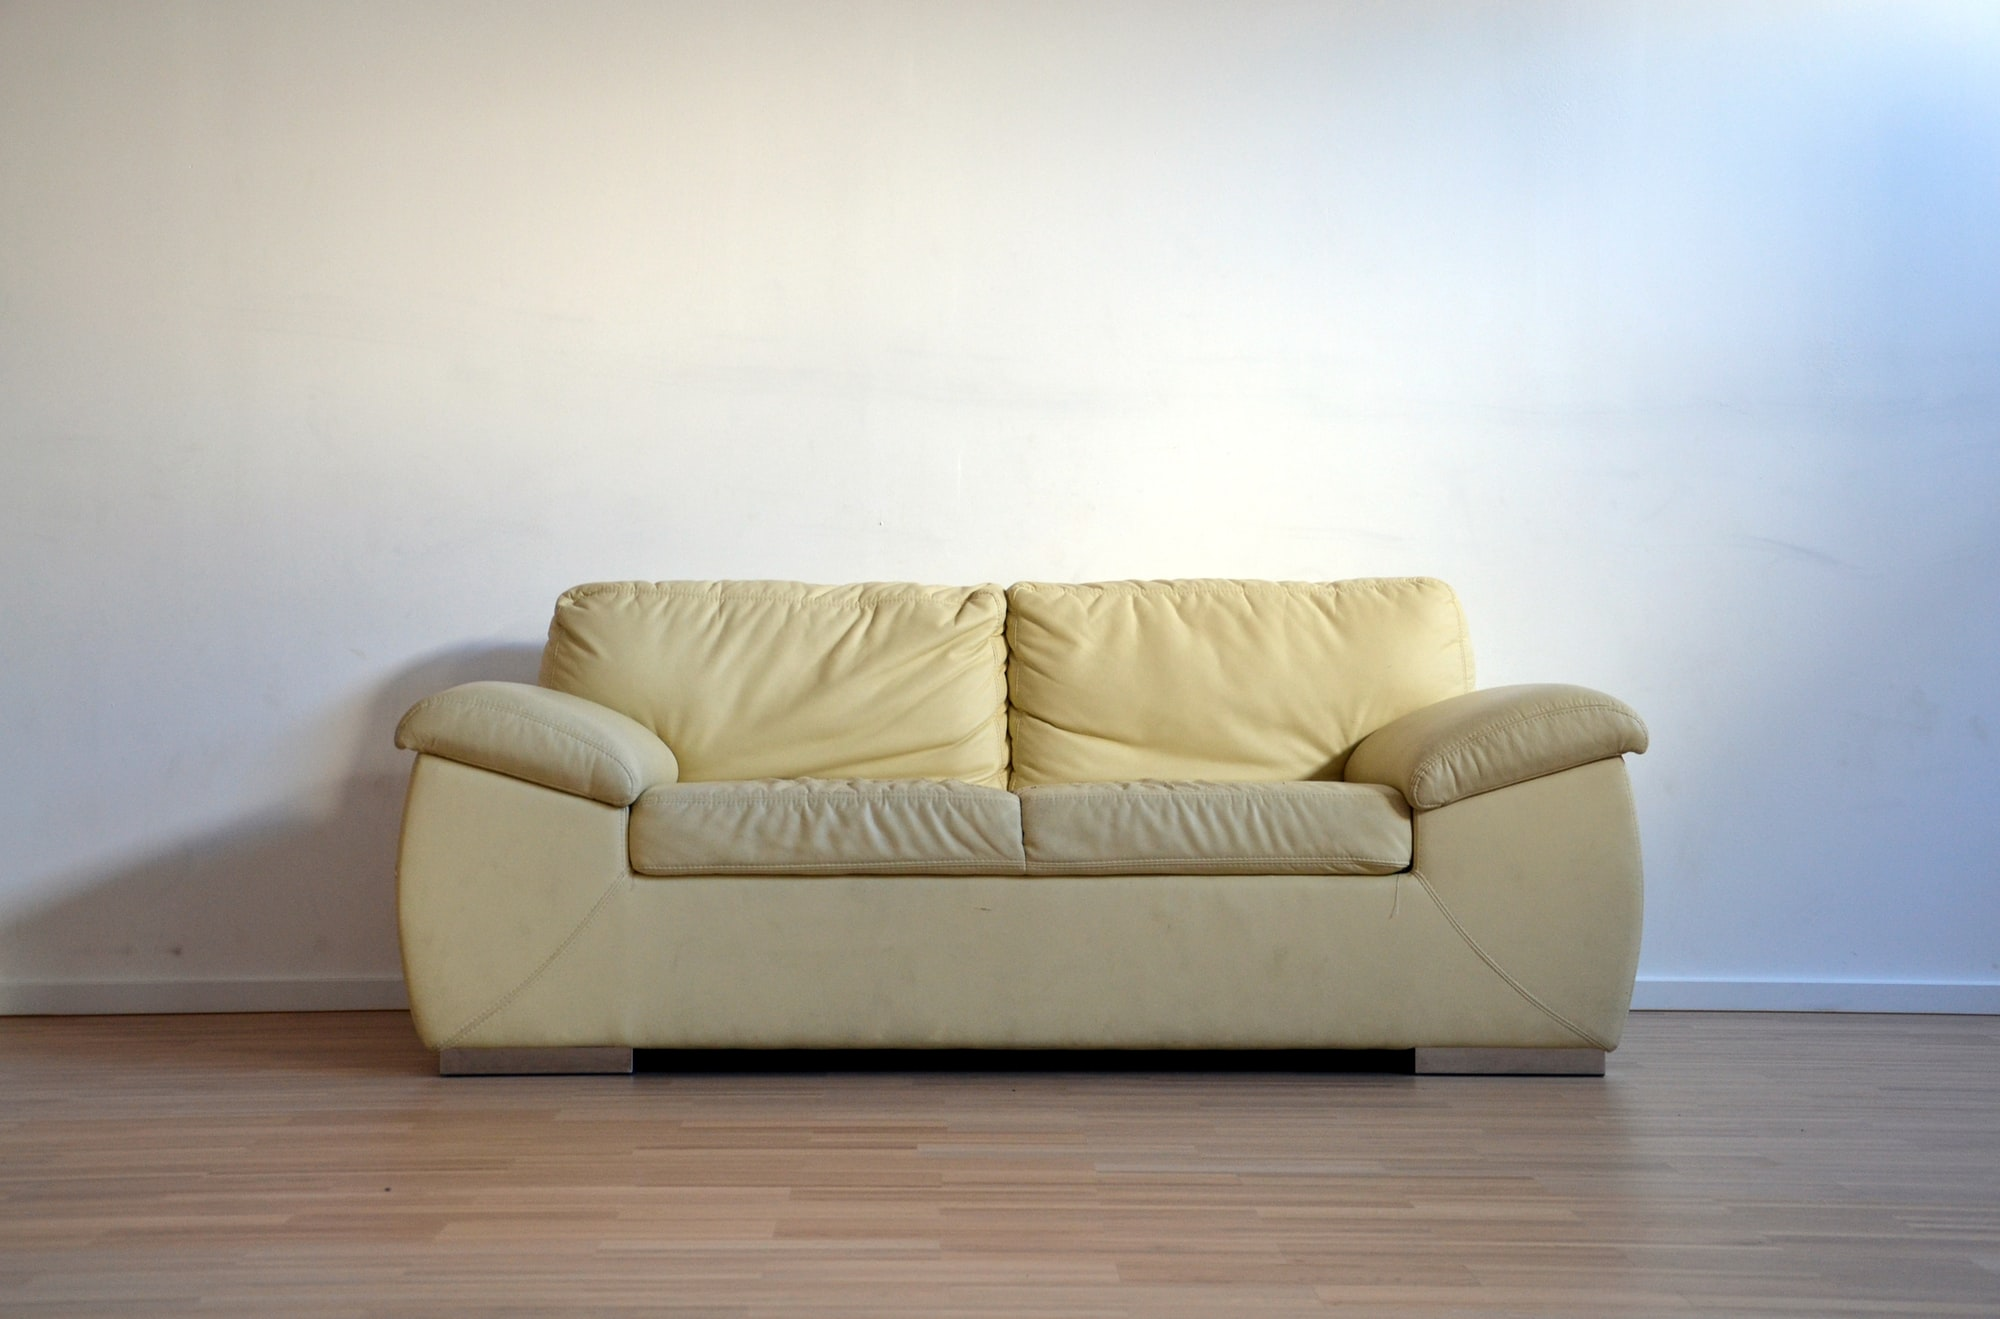 In the end, it is just a couch (or a sofa, depending on your viewpoint)